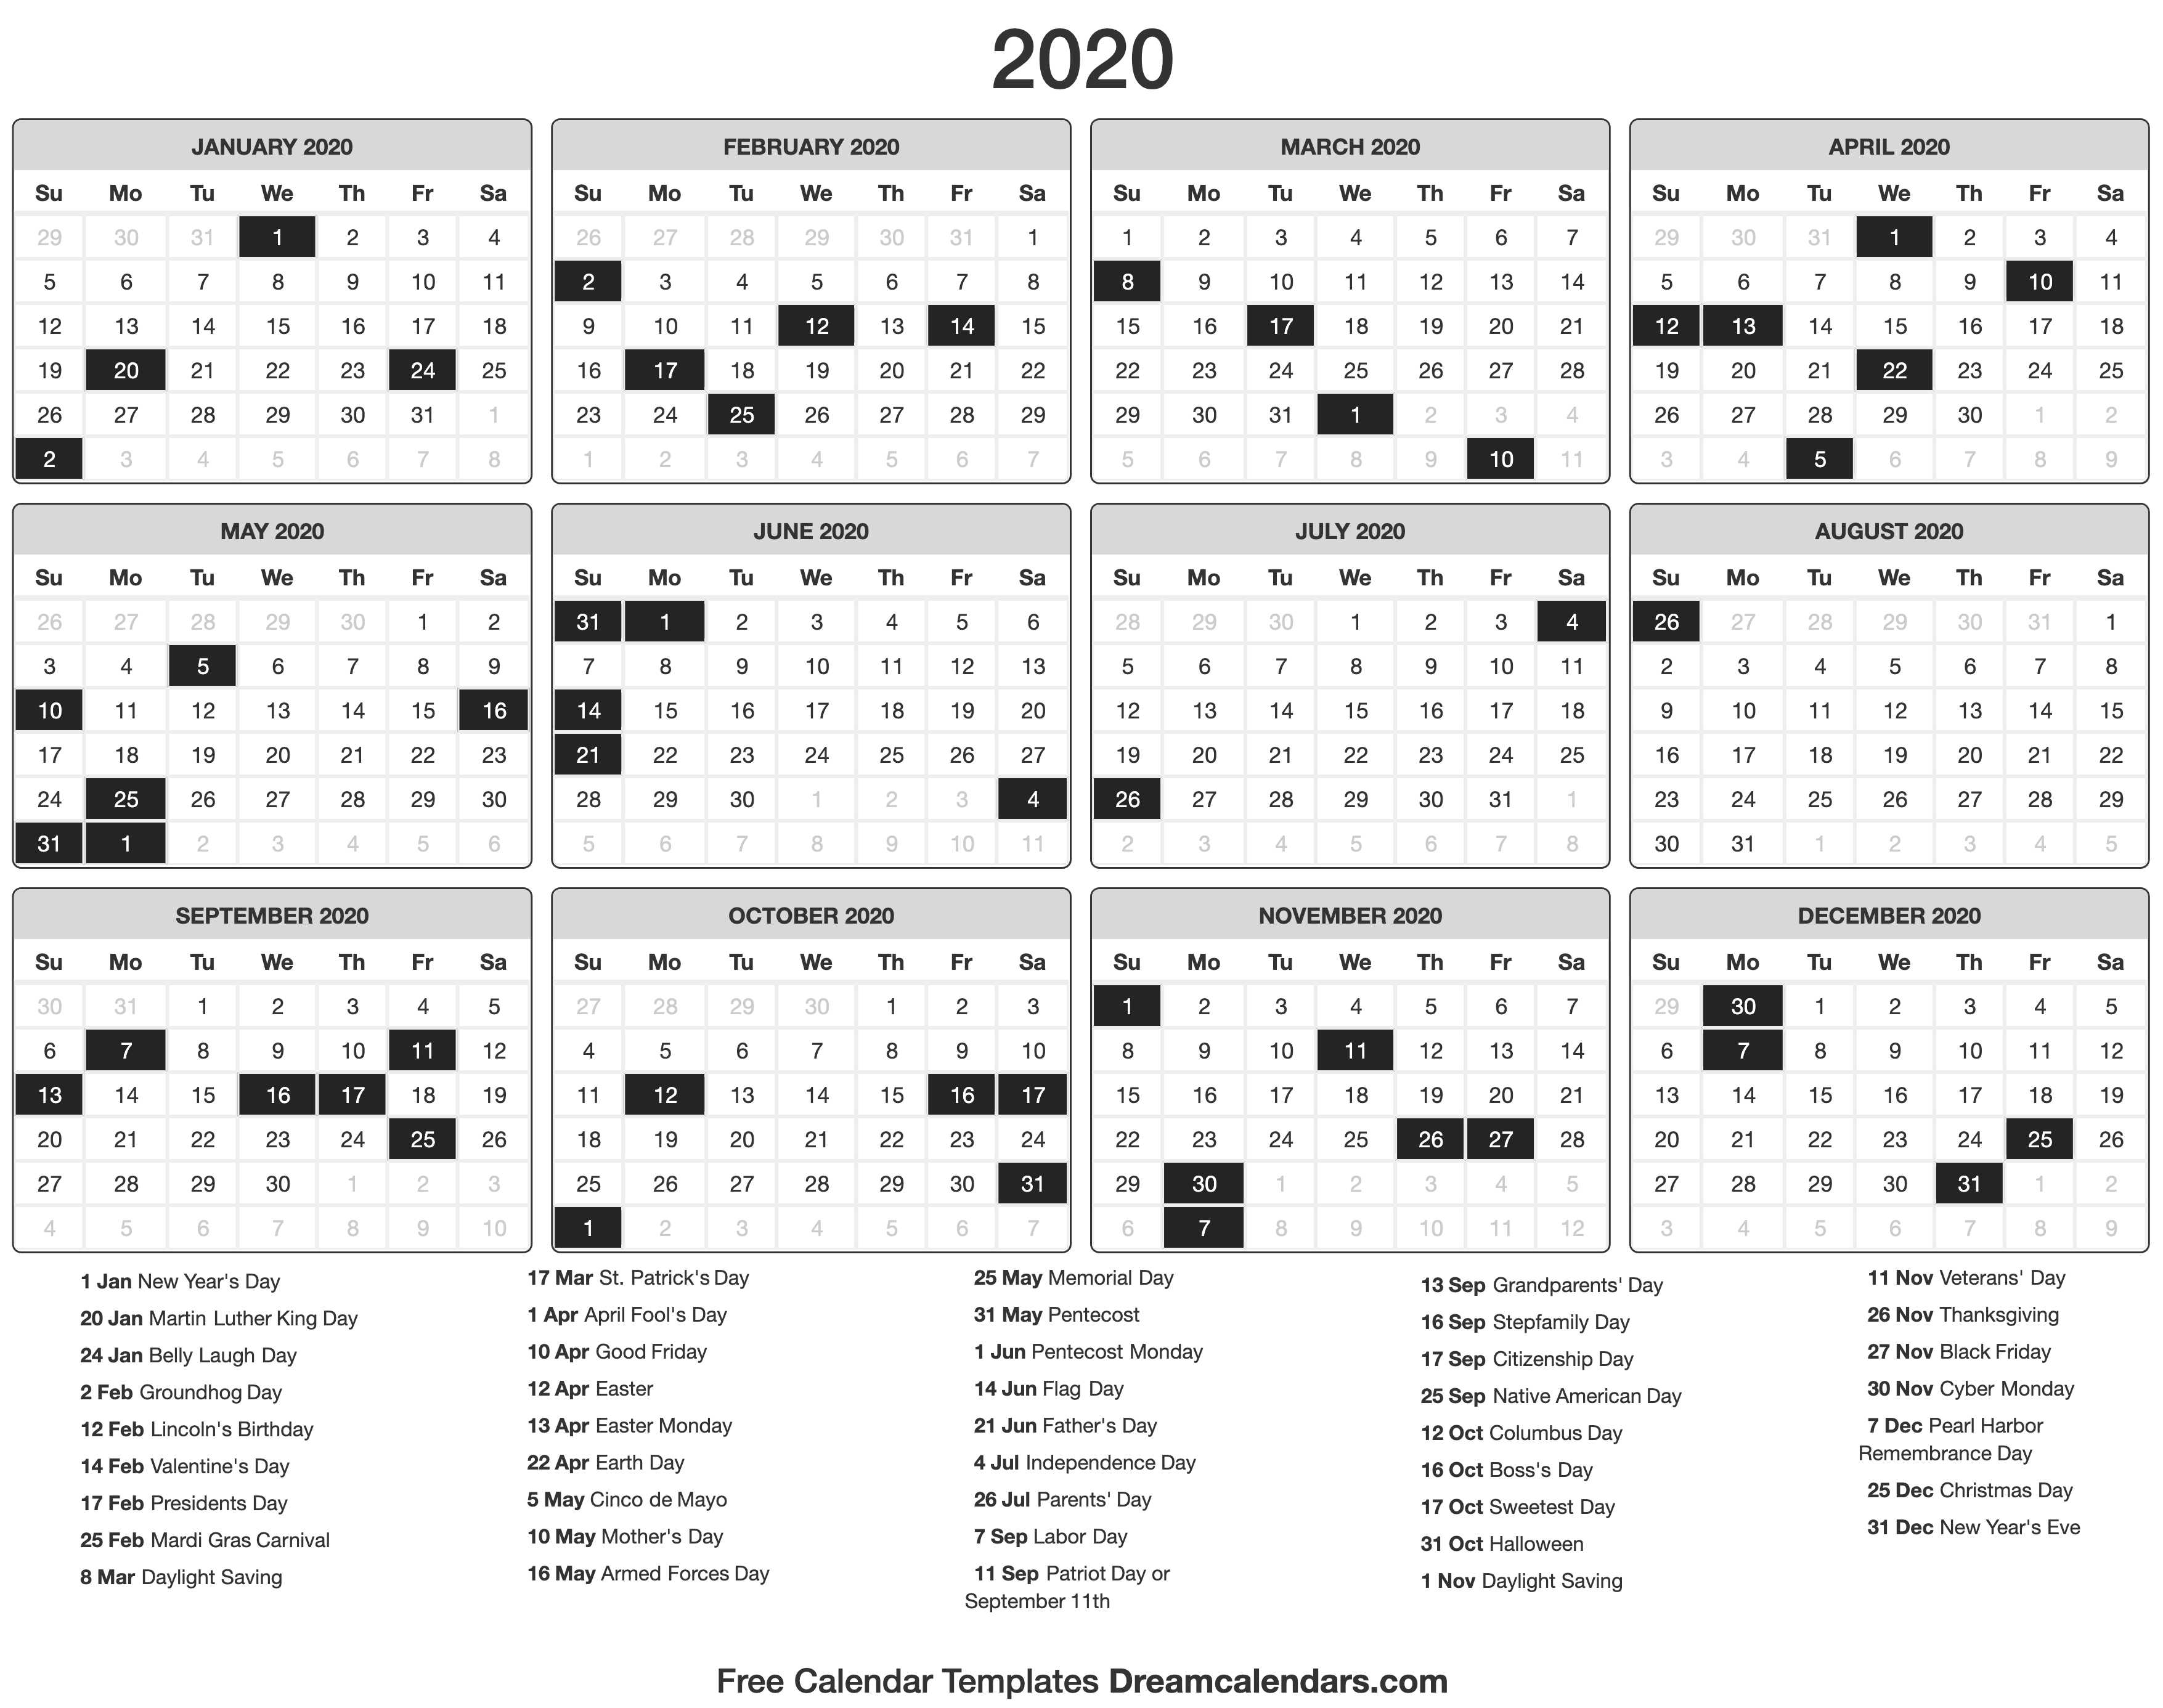 2020 Calendar intended for Small Monthly Calendar Printable 2020 October